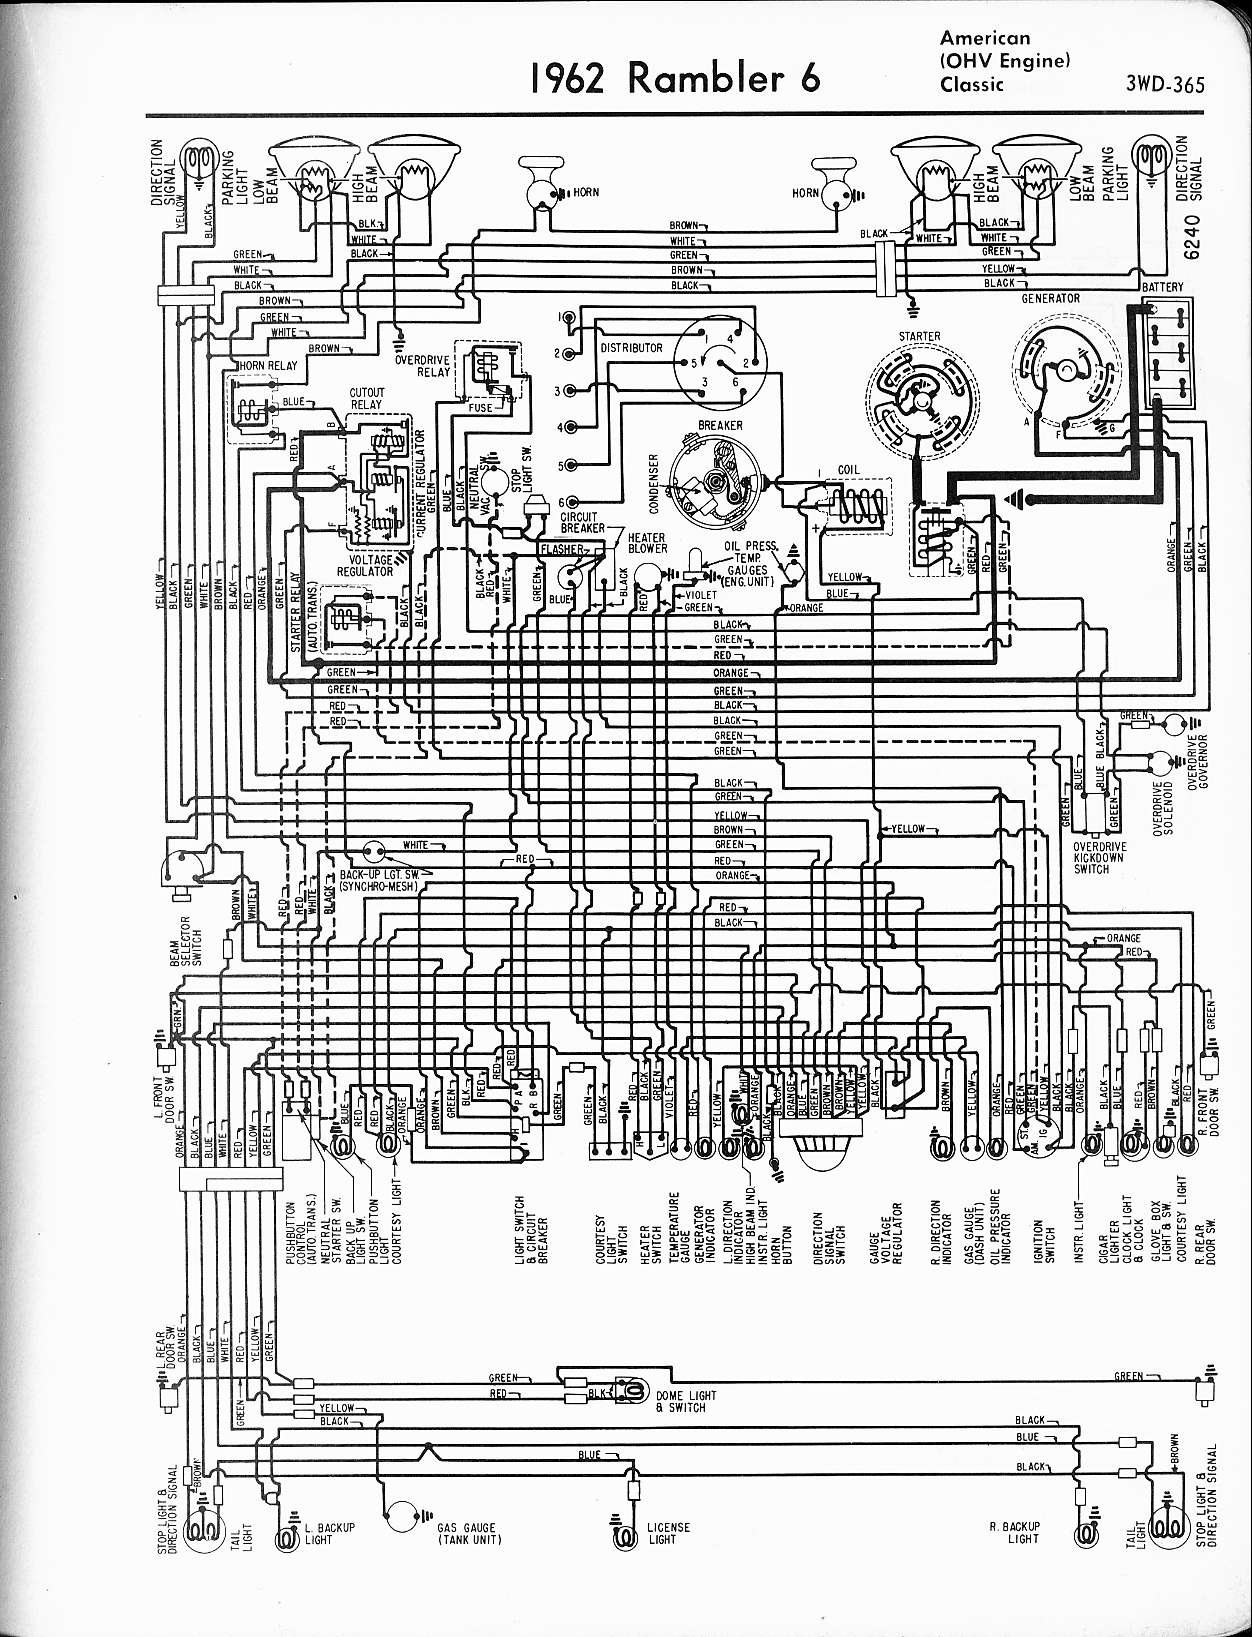 rambler wiring diagrams the old car manual project rh oldcarmanualproject com 1976 AMC 1969 AMC Rebel